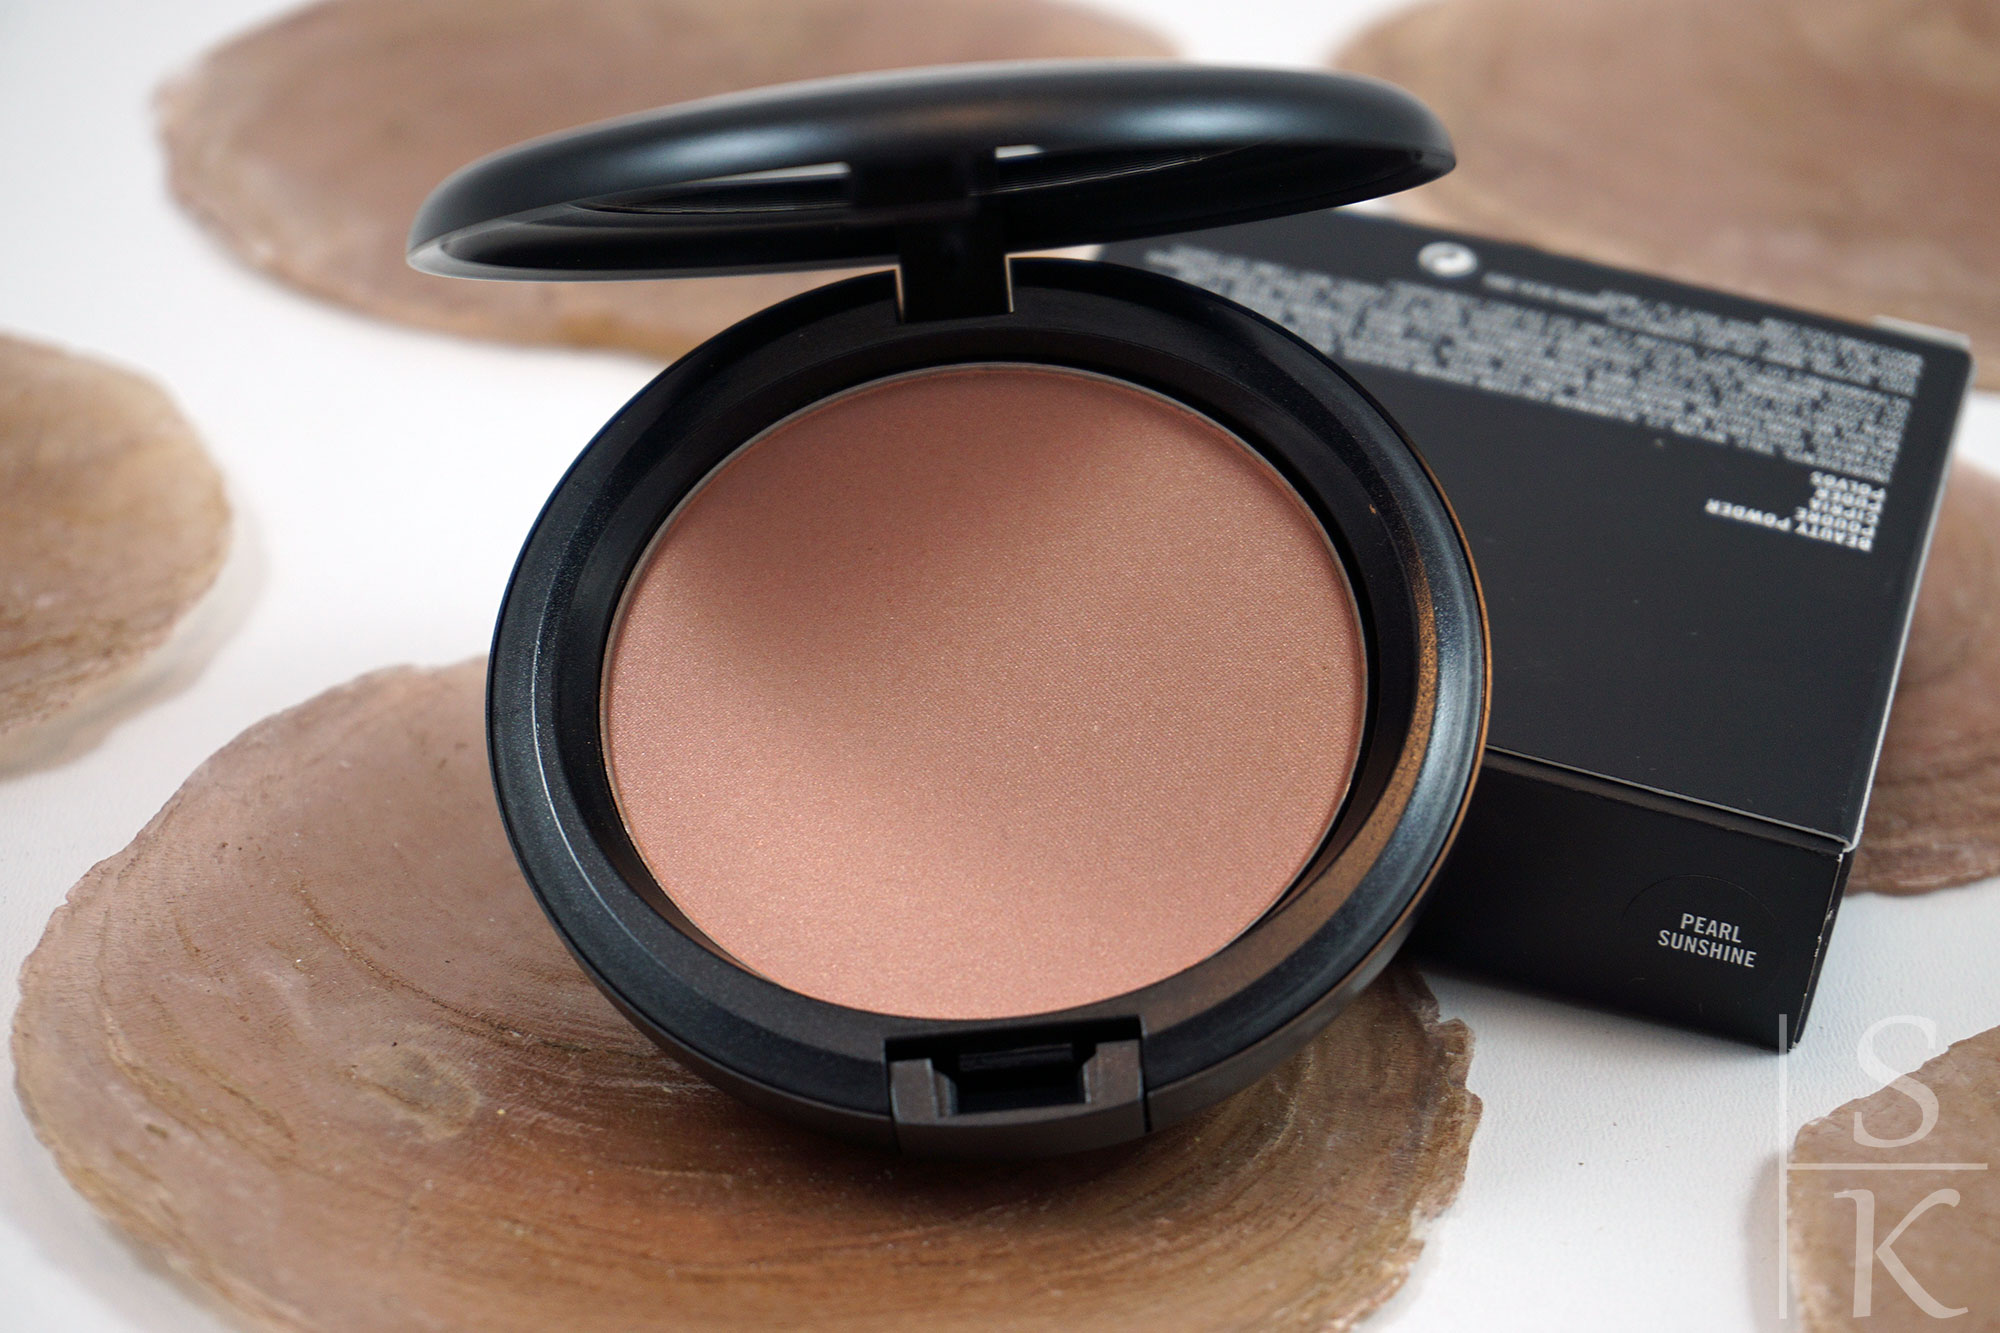 MAC-Beauty-Powder-Poudre-Pearl-Sunshine-03